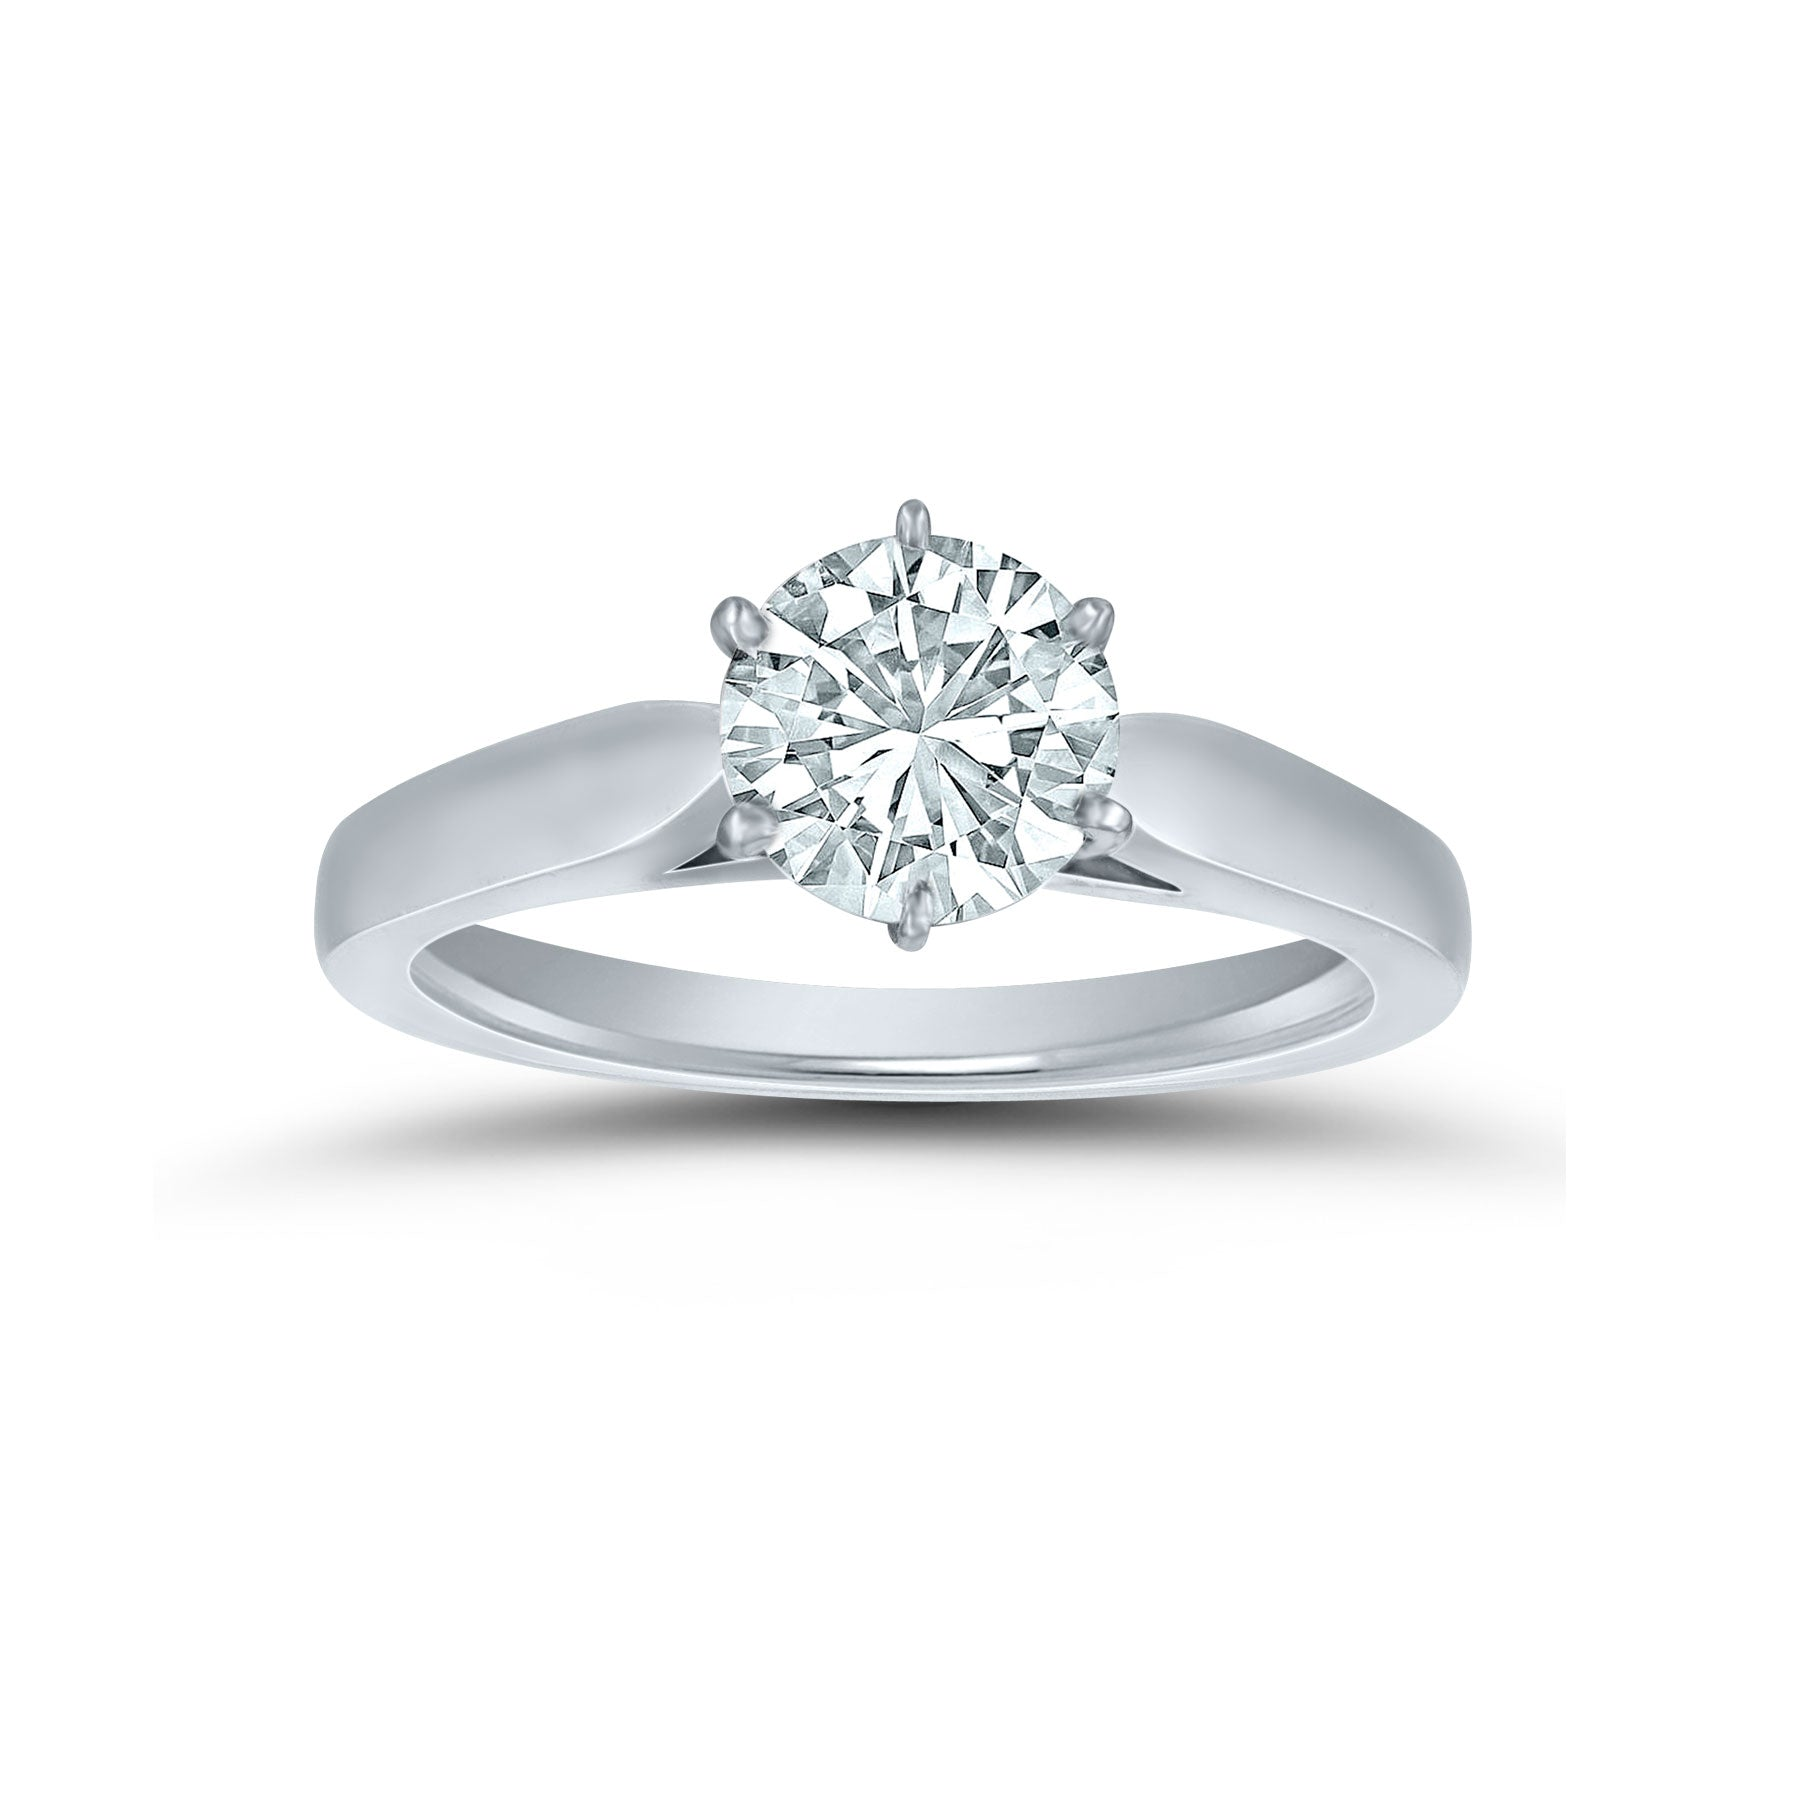 Engagement Ring Mounting, Solitare Style, 14K White Gold